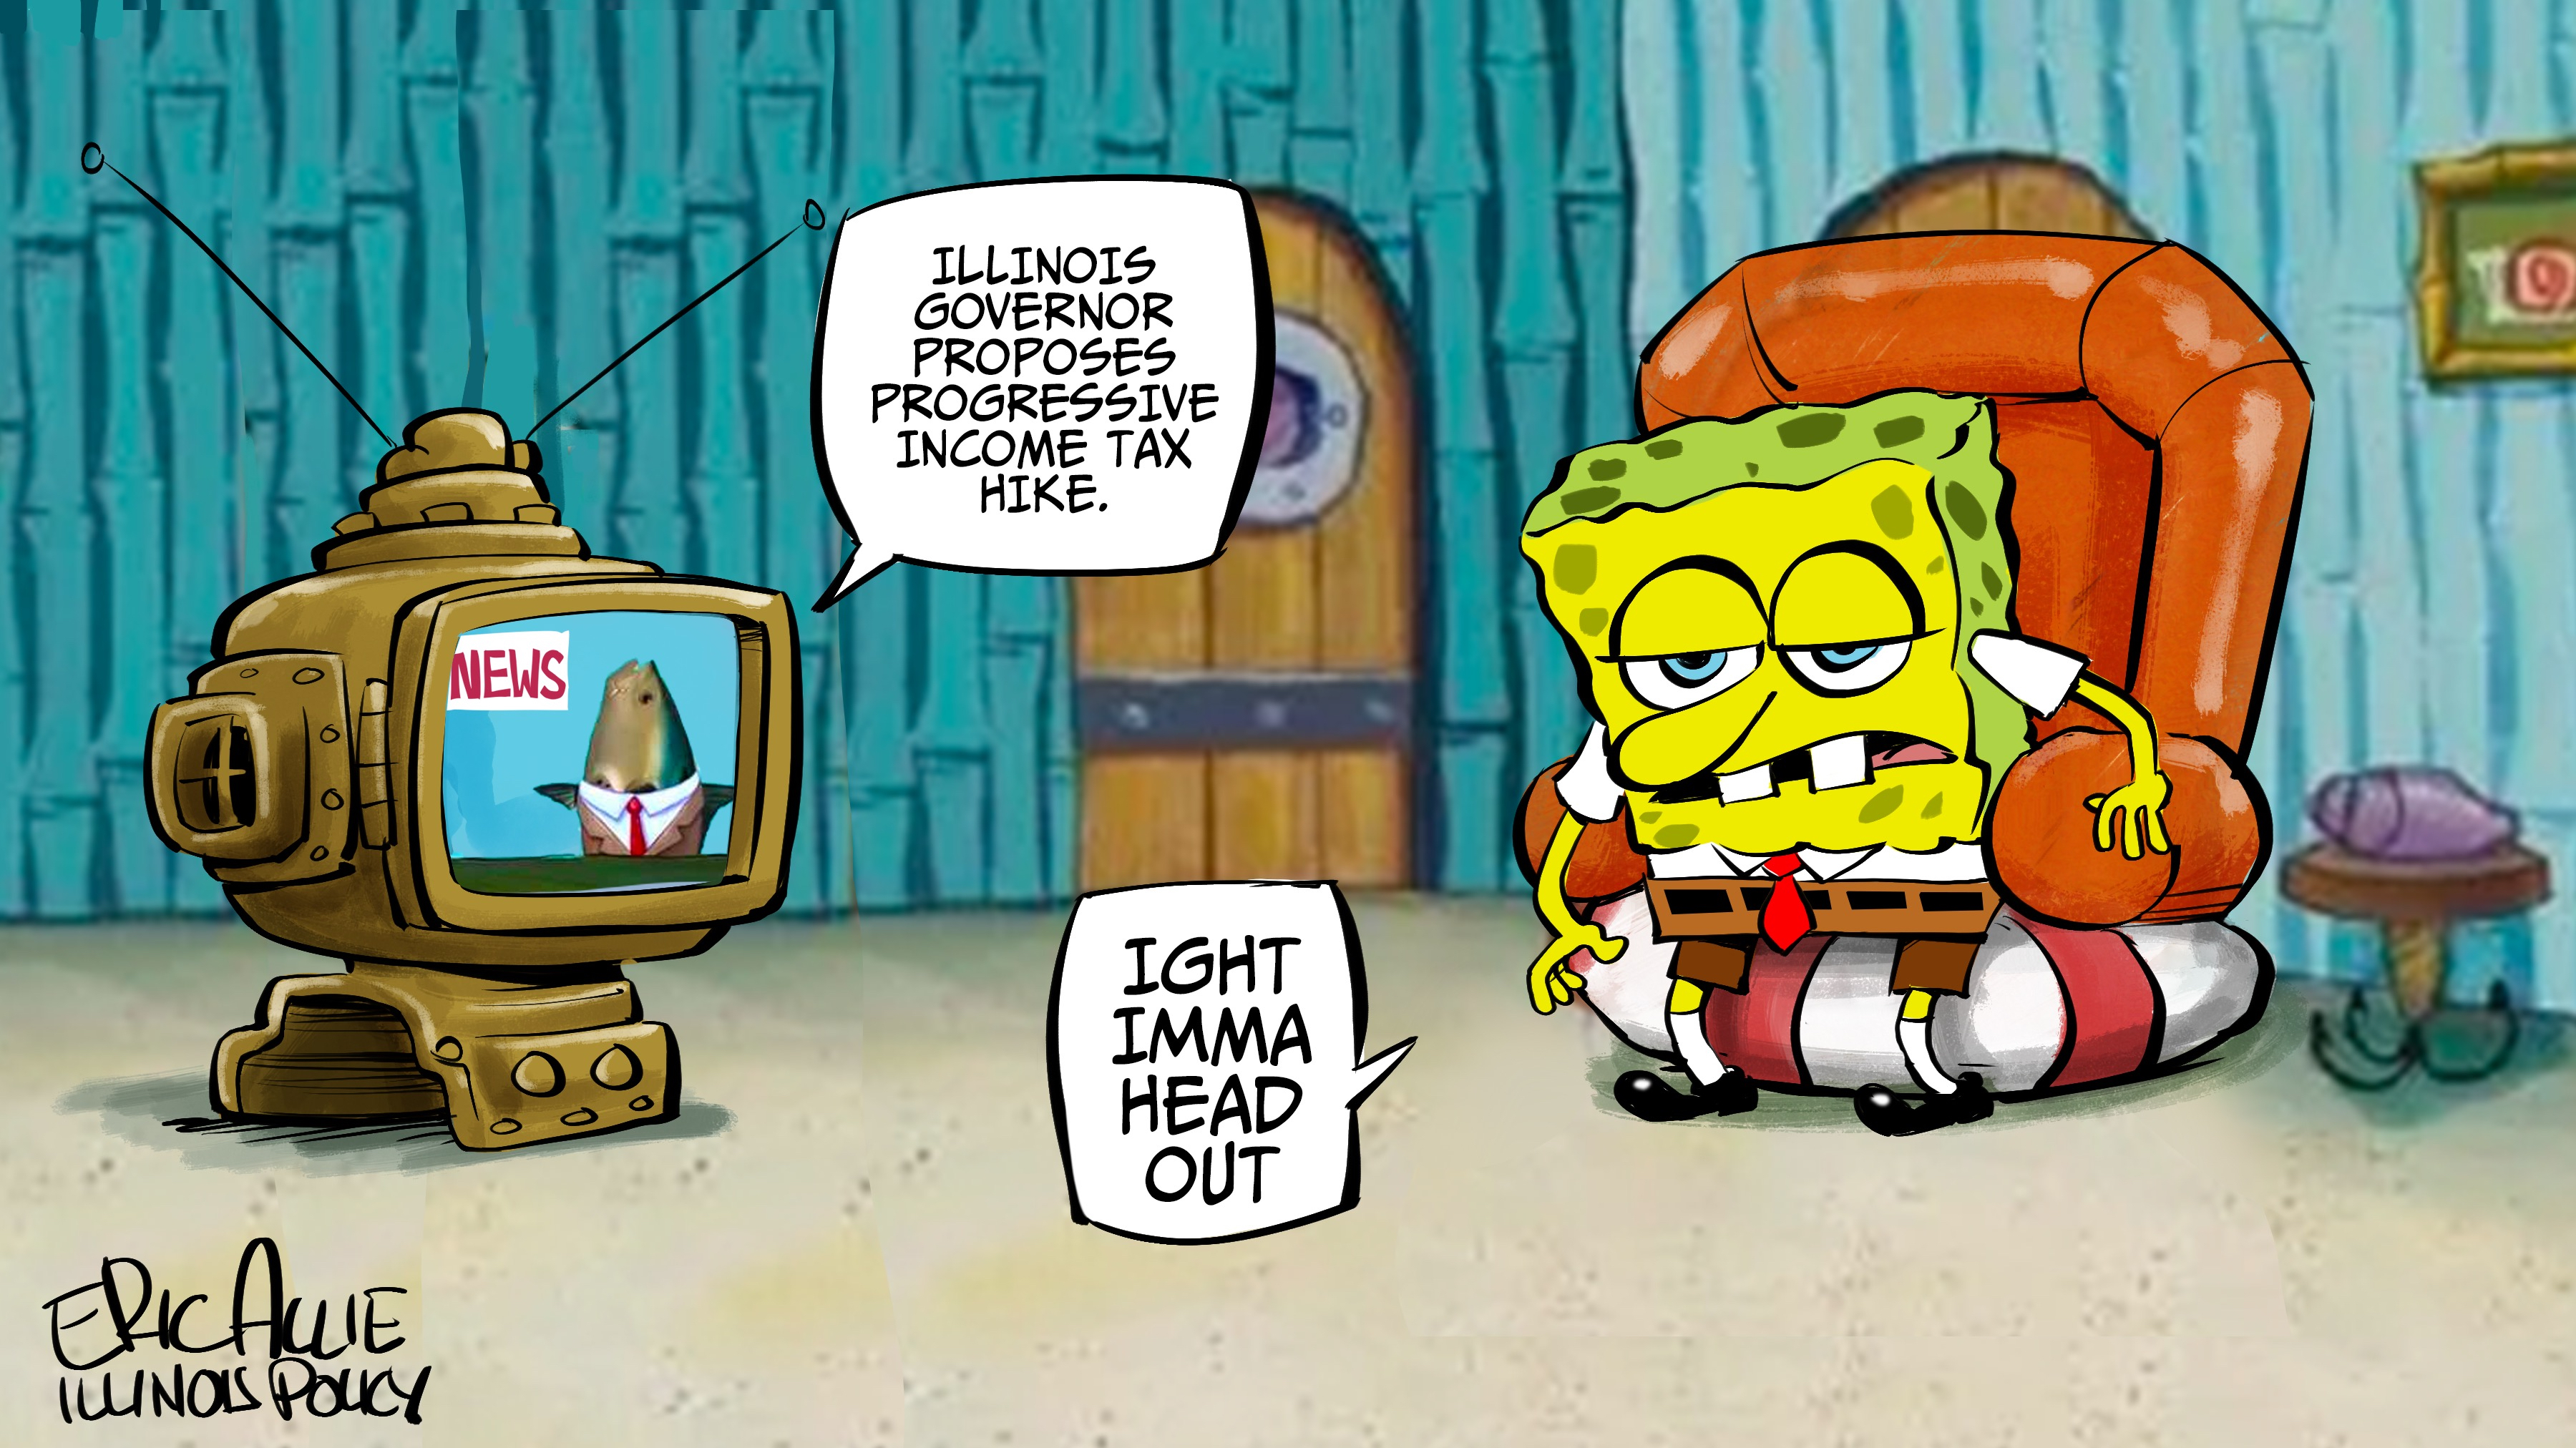 Spongebob on progressive tax: Imma head out